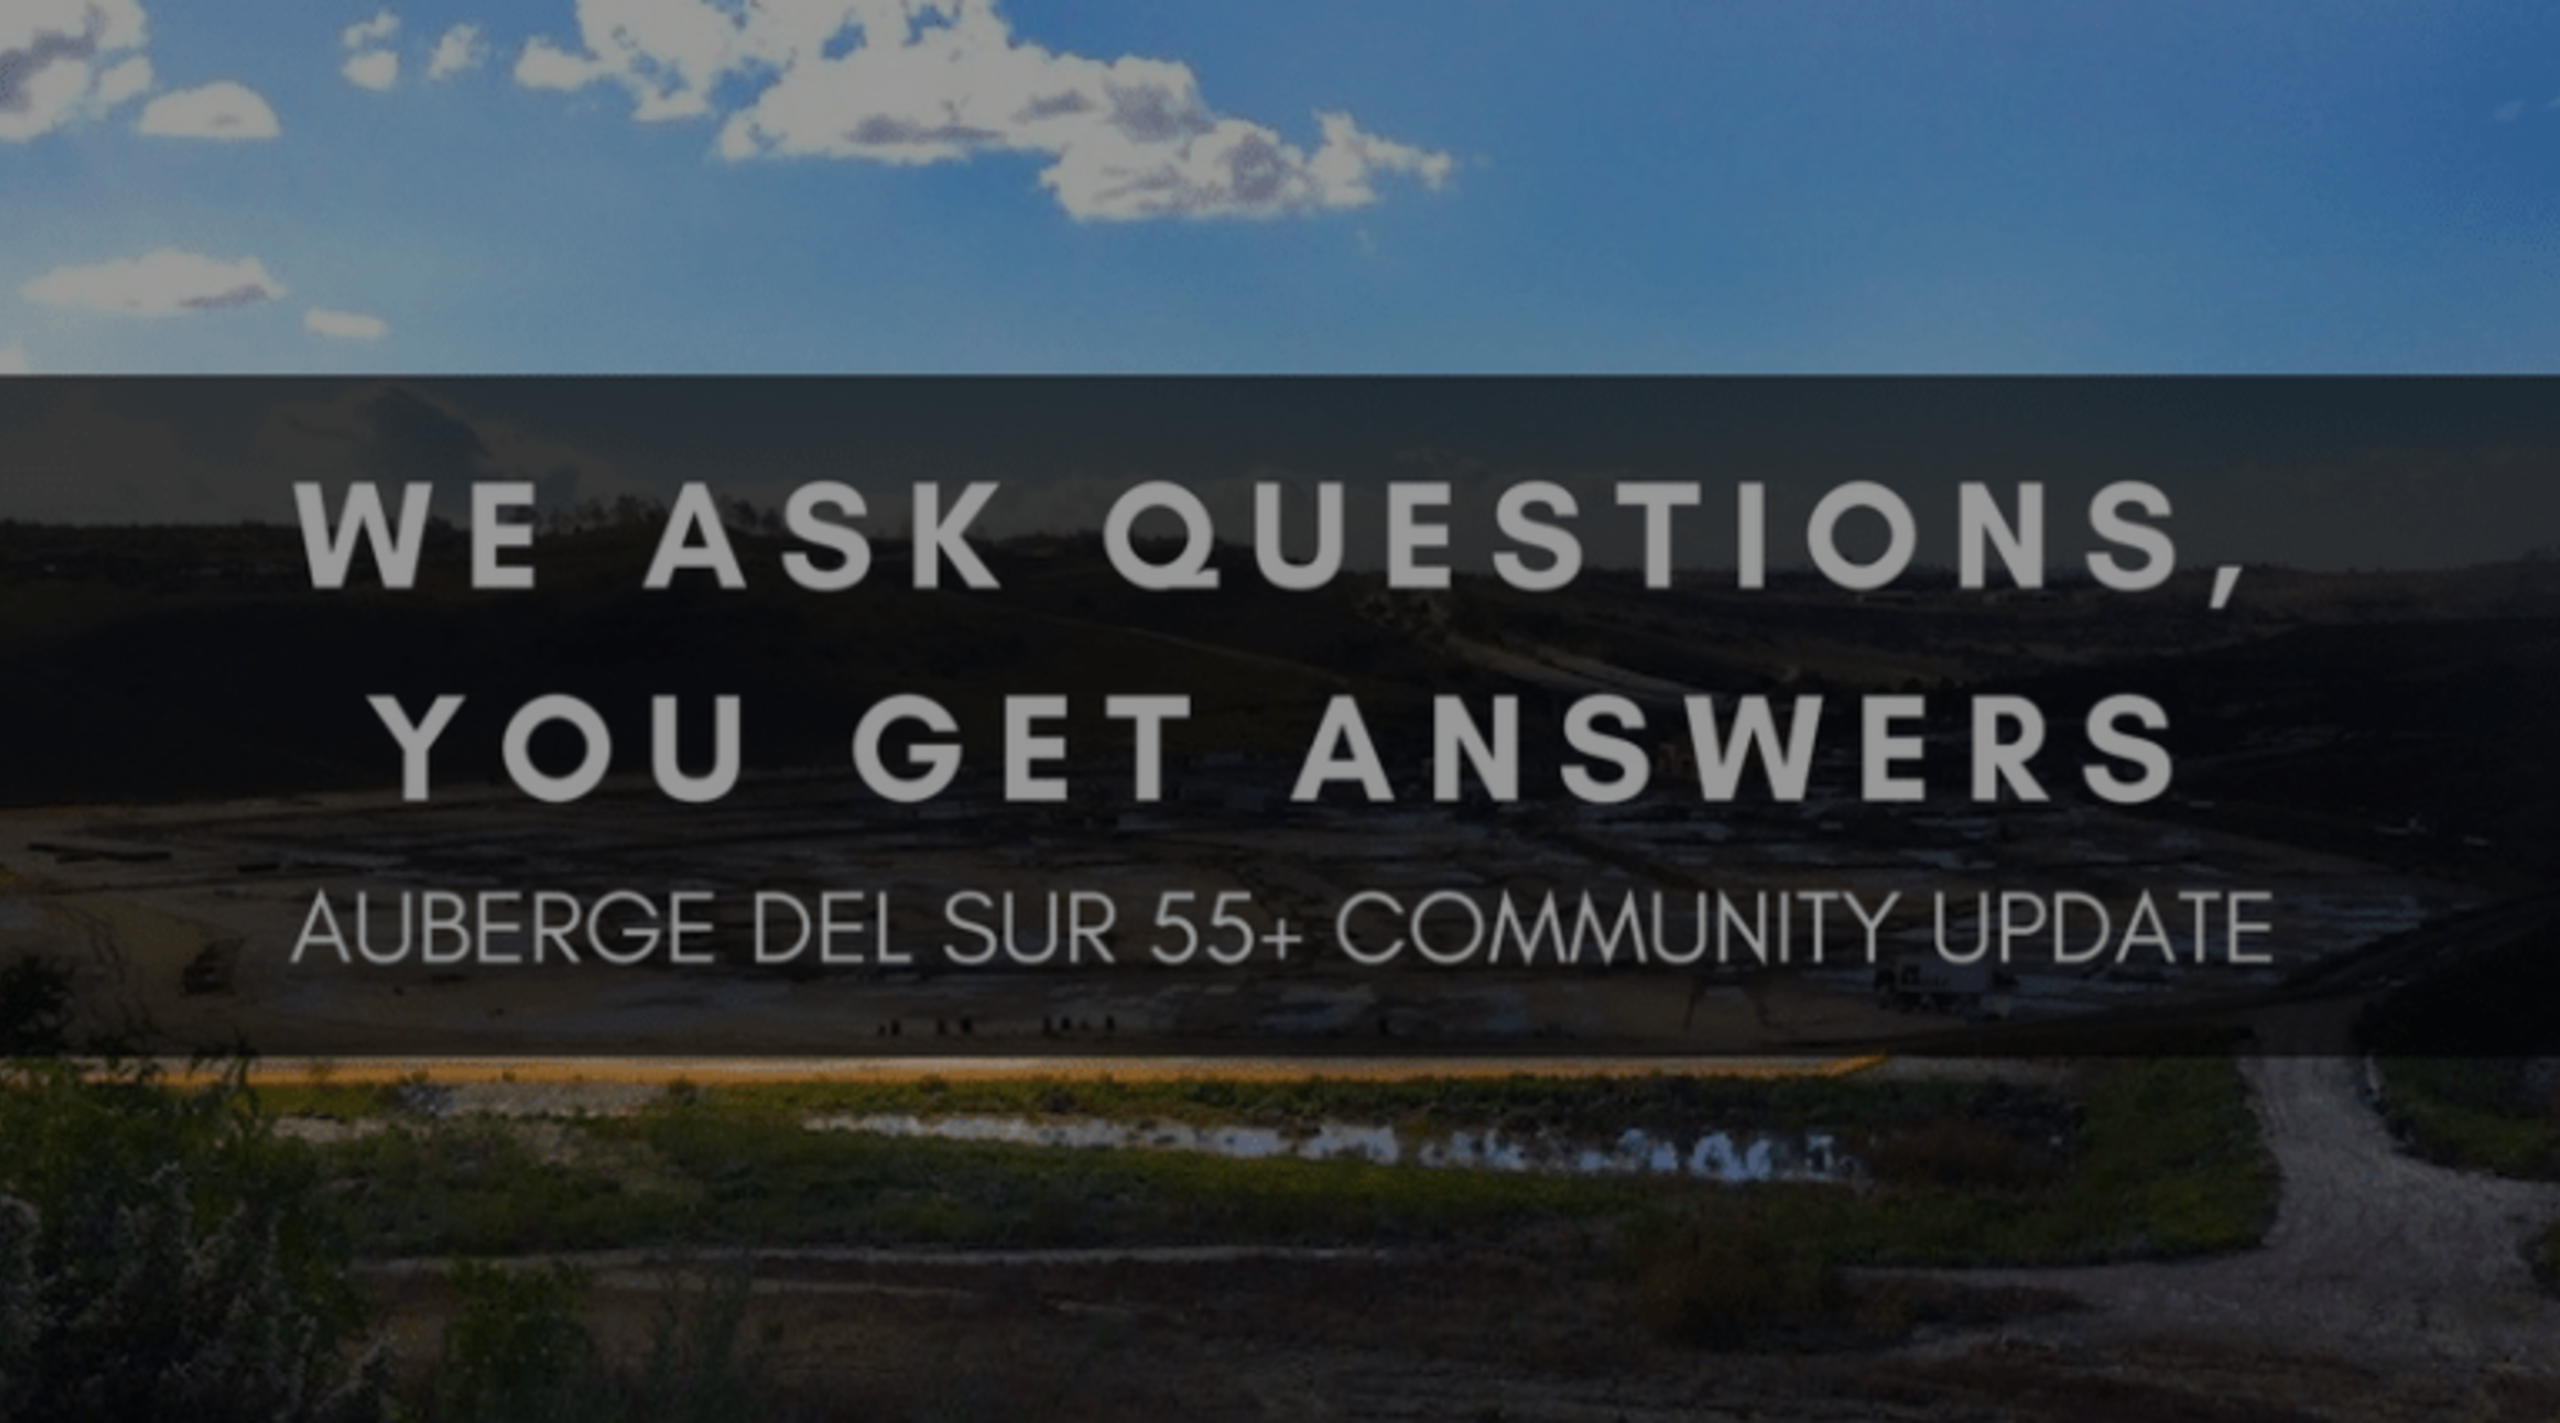 WE ASK QUESTIONS, YOU GET ANSWERS | AUBERGE DEL SUR 55+ COMMUNITY UPDATE